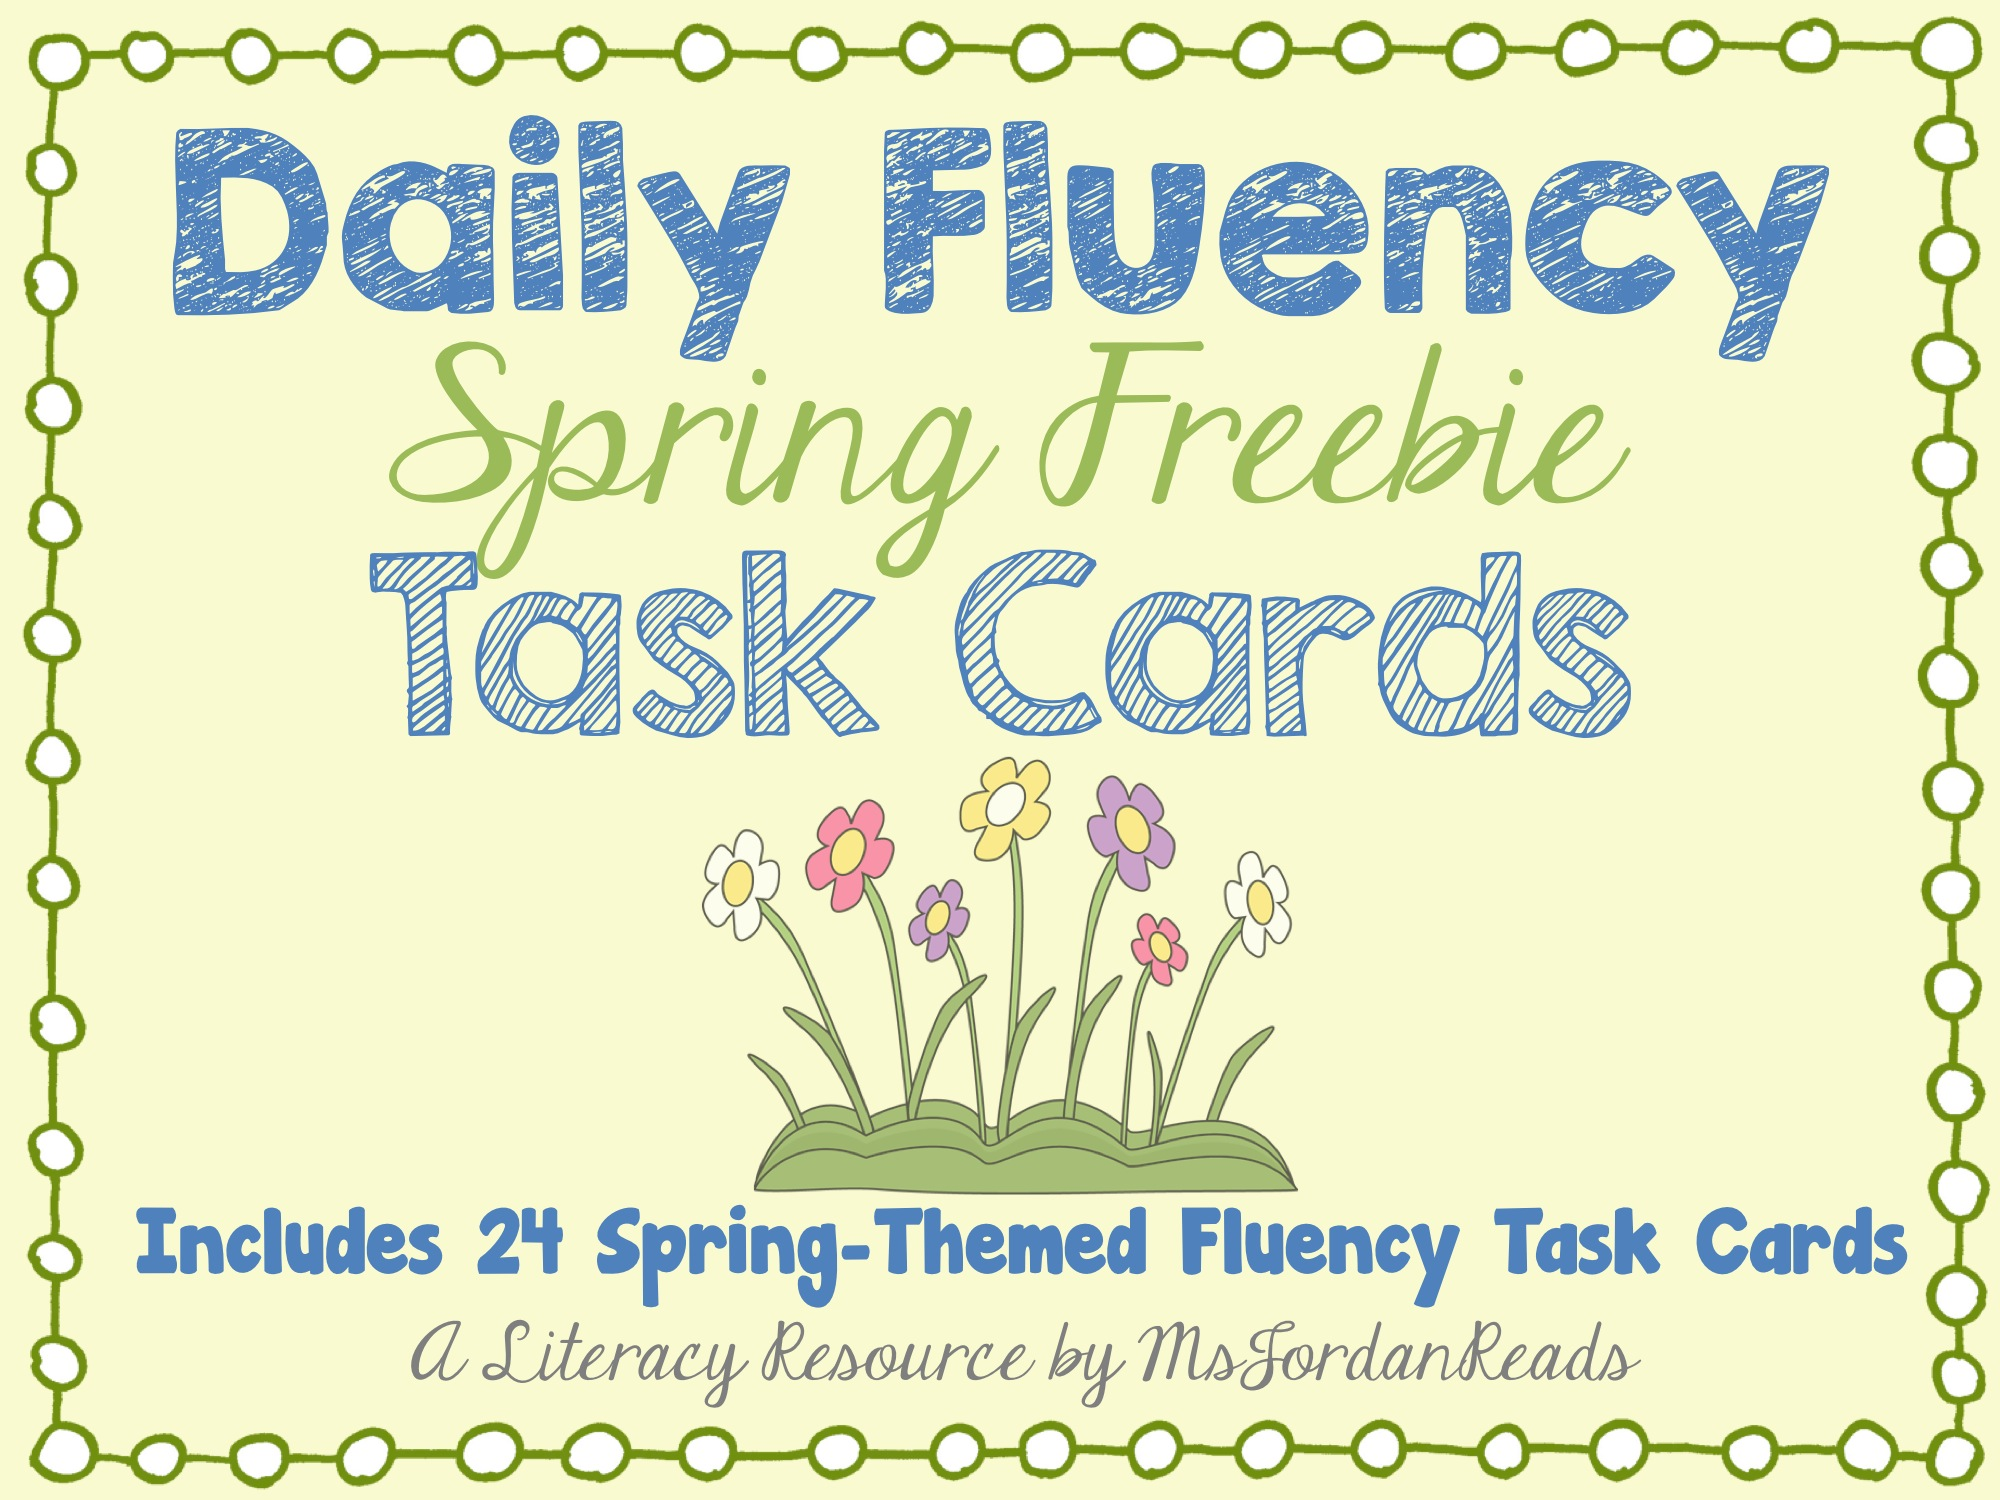 DailyFluencyTaskCards_SpringFreebie 4:20:2015